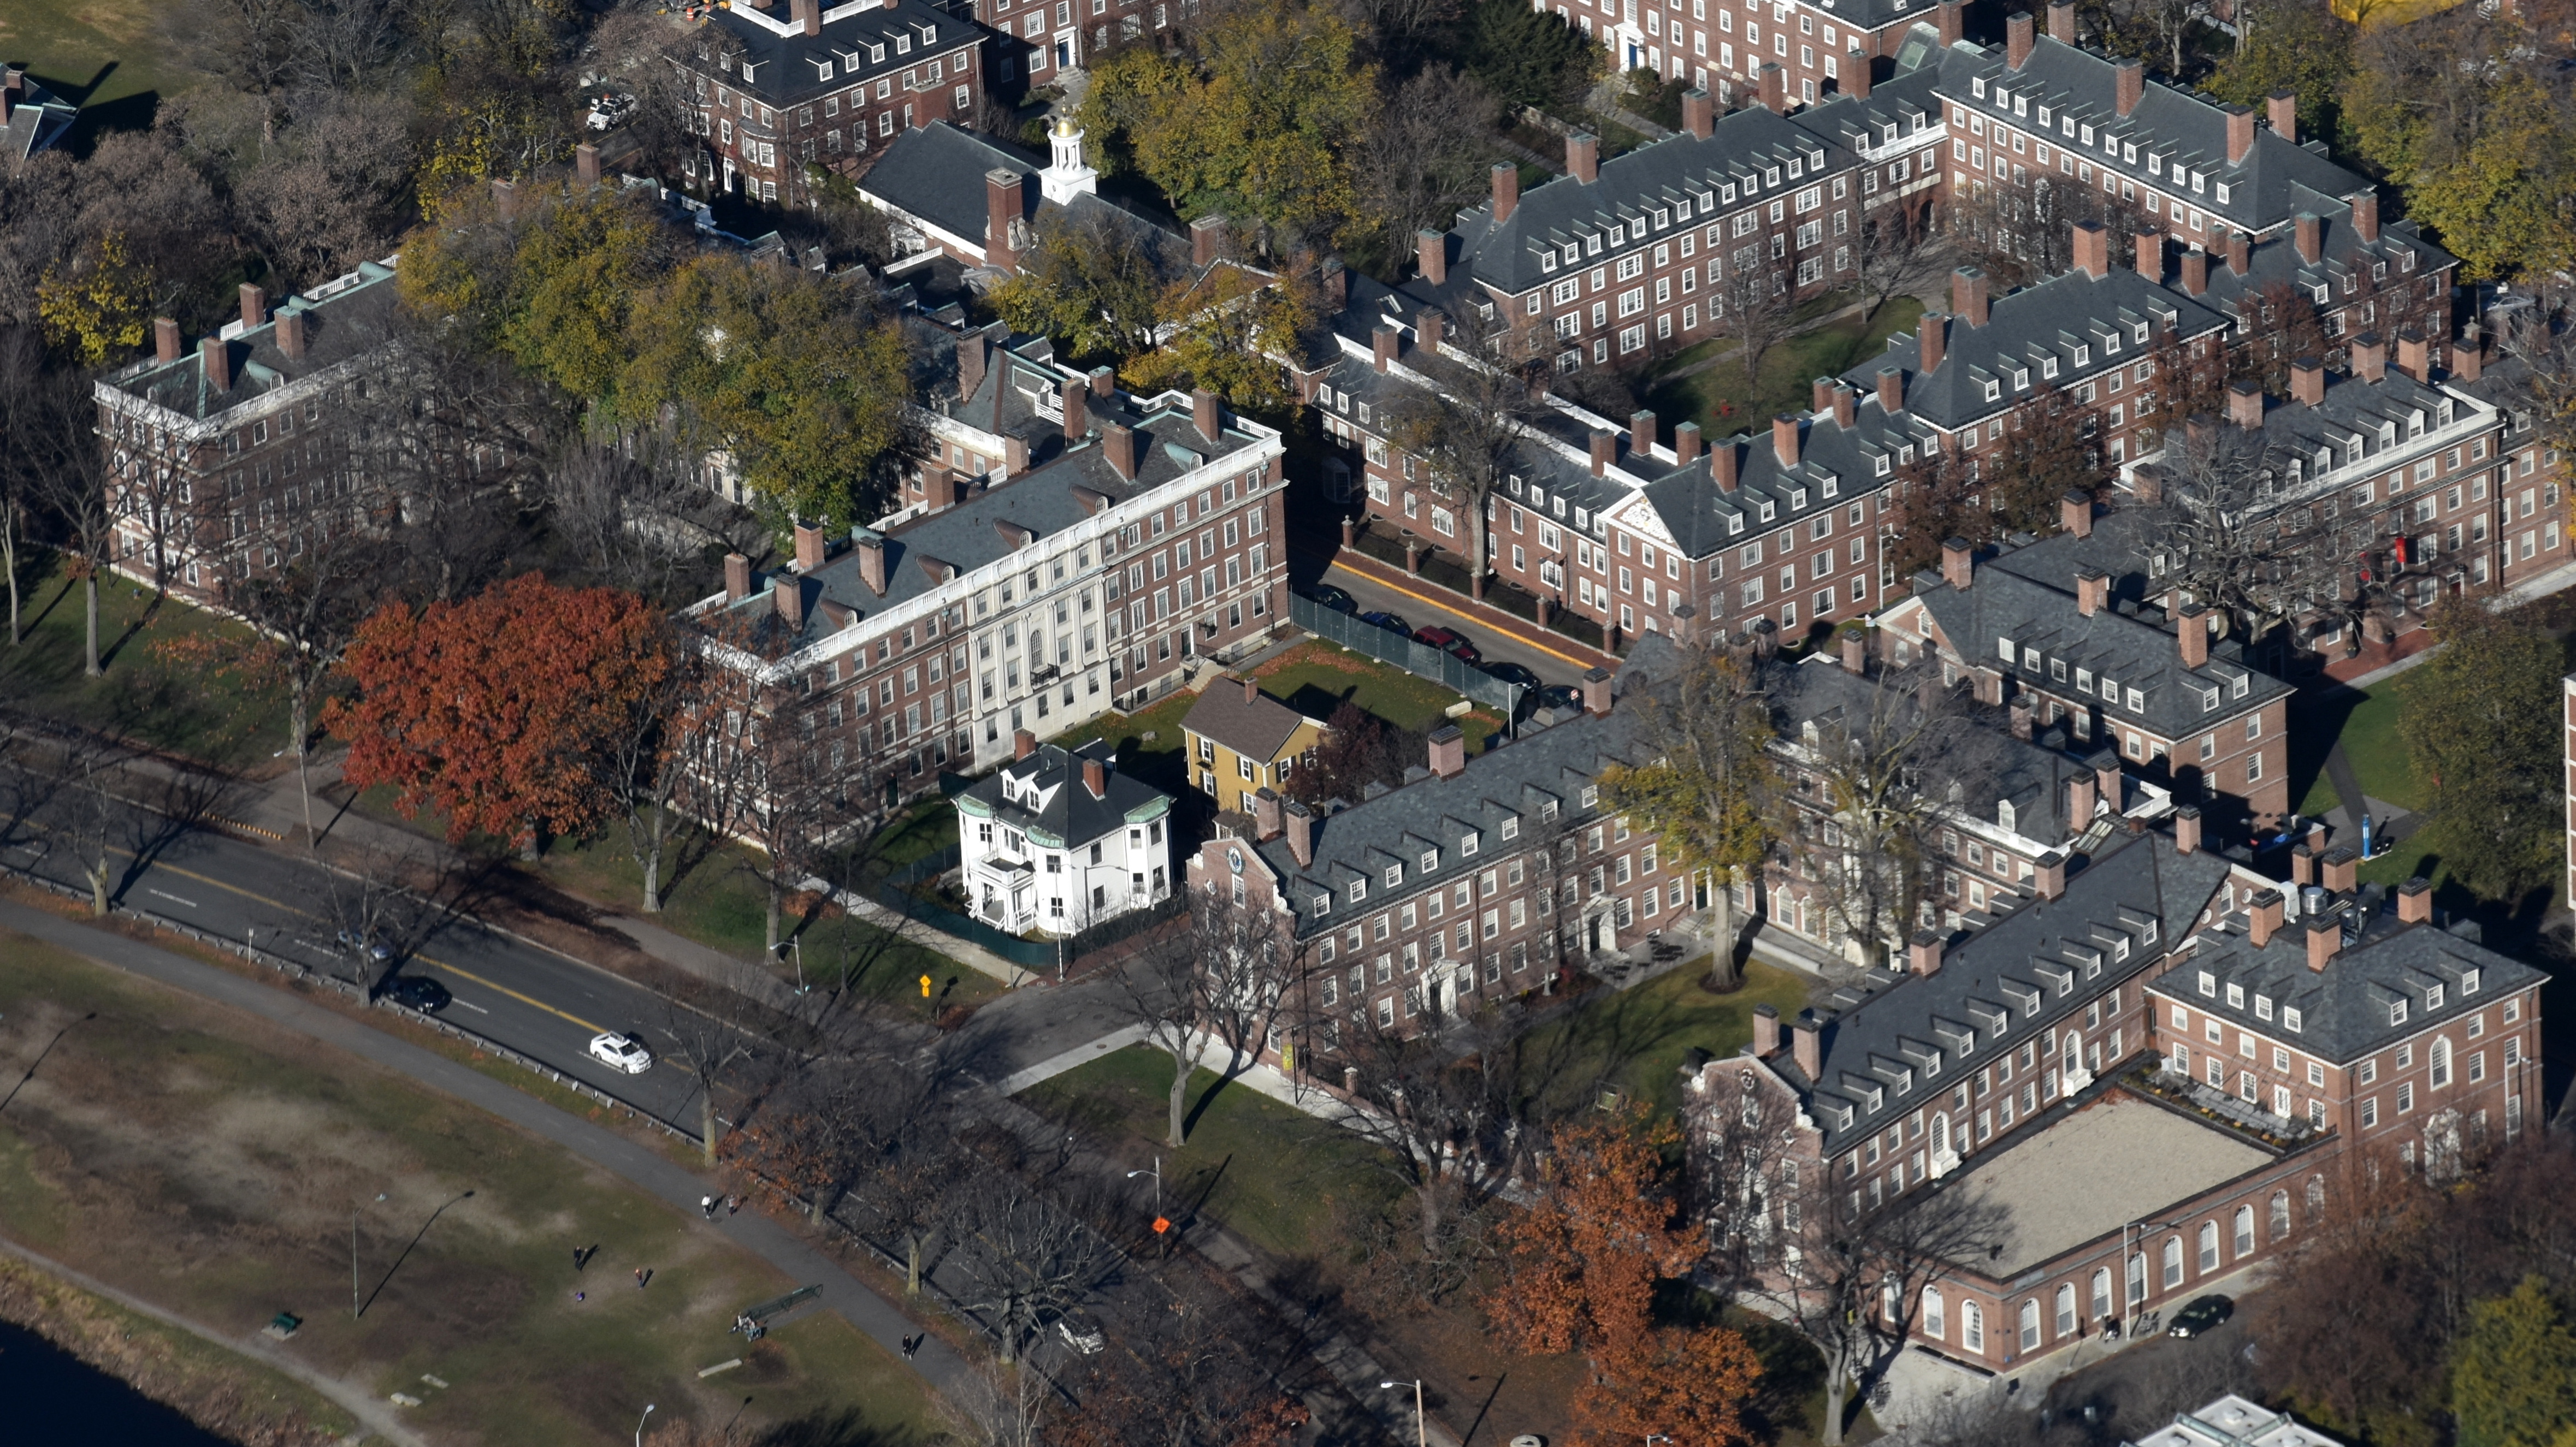 Harvard University's Winthrop House